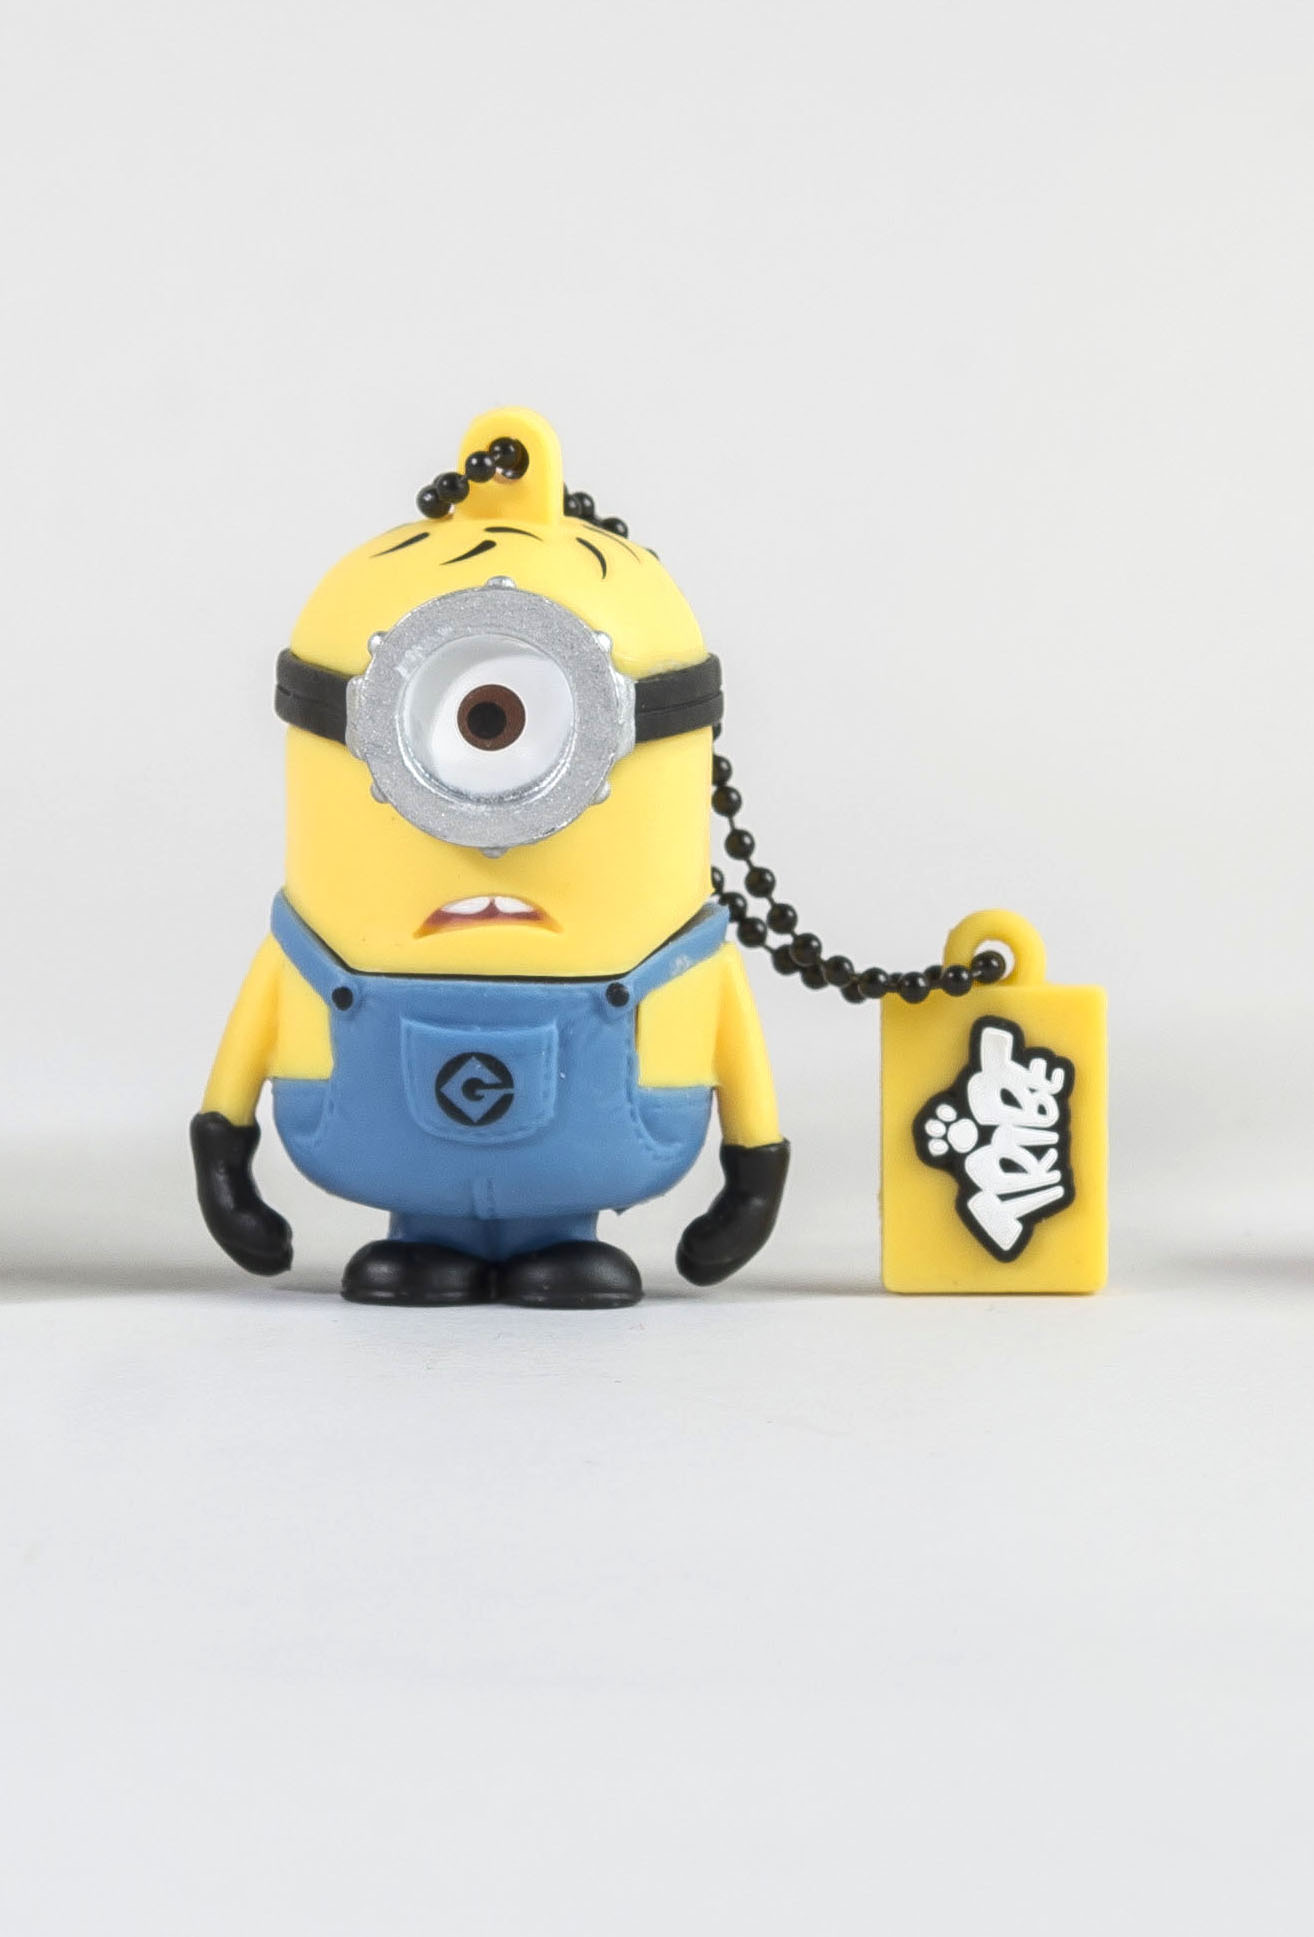 Moi moche et mechant cle usb minion carl 8 gb - Mechant minion ...